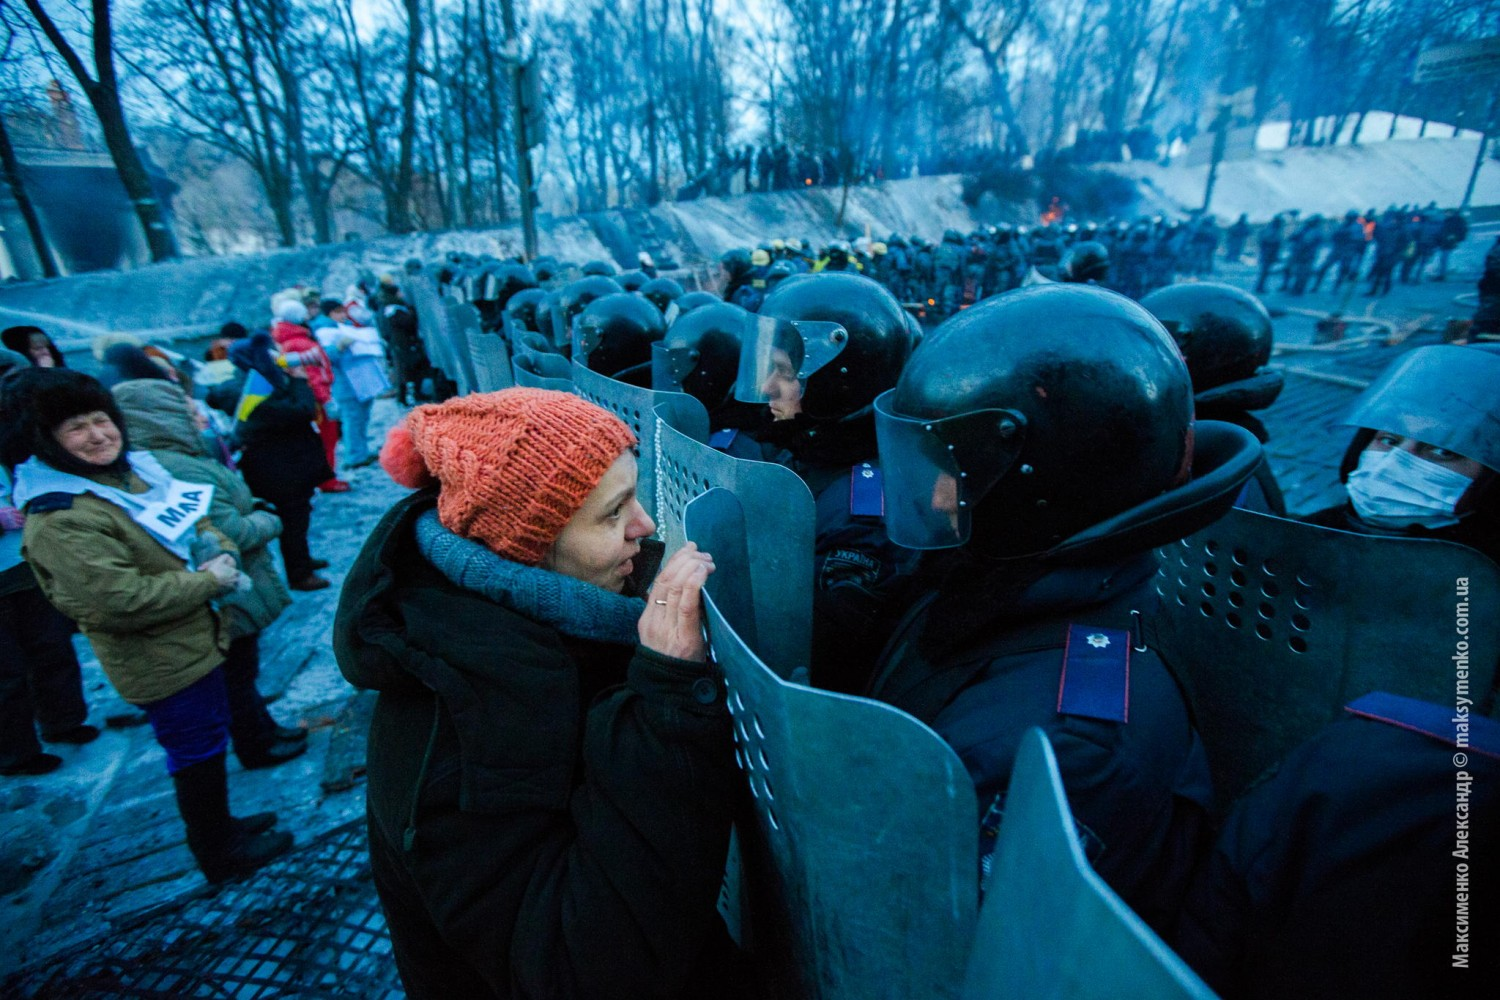 Best of 2014: Top 10 Journalism Photos